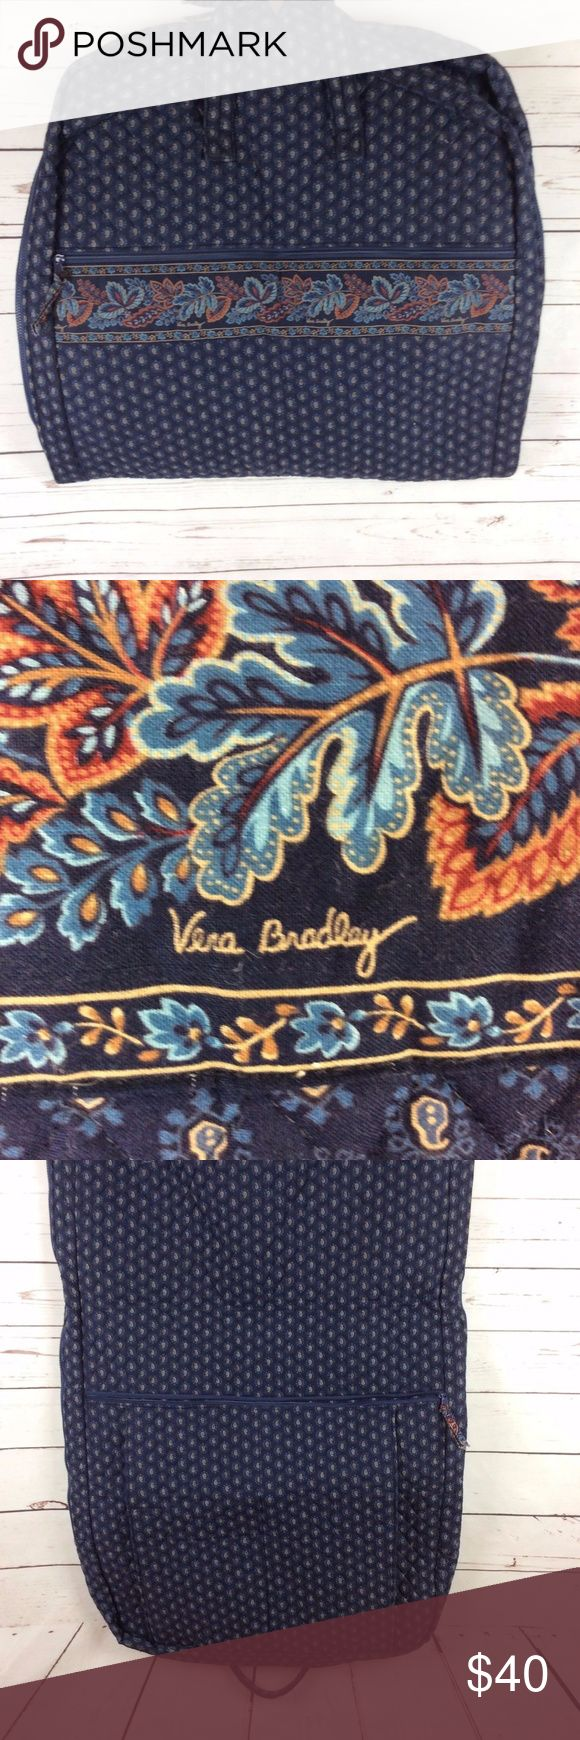 Vera Bradley Garment Bag Navy Floral Vera Bradley Garment Bag Navy Floral - Excellent Condition.  No stains or tears. Great Condition. See photos for details. Vera Bradley Bags Travel Bags